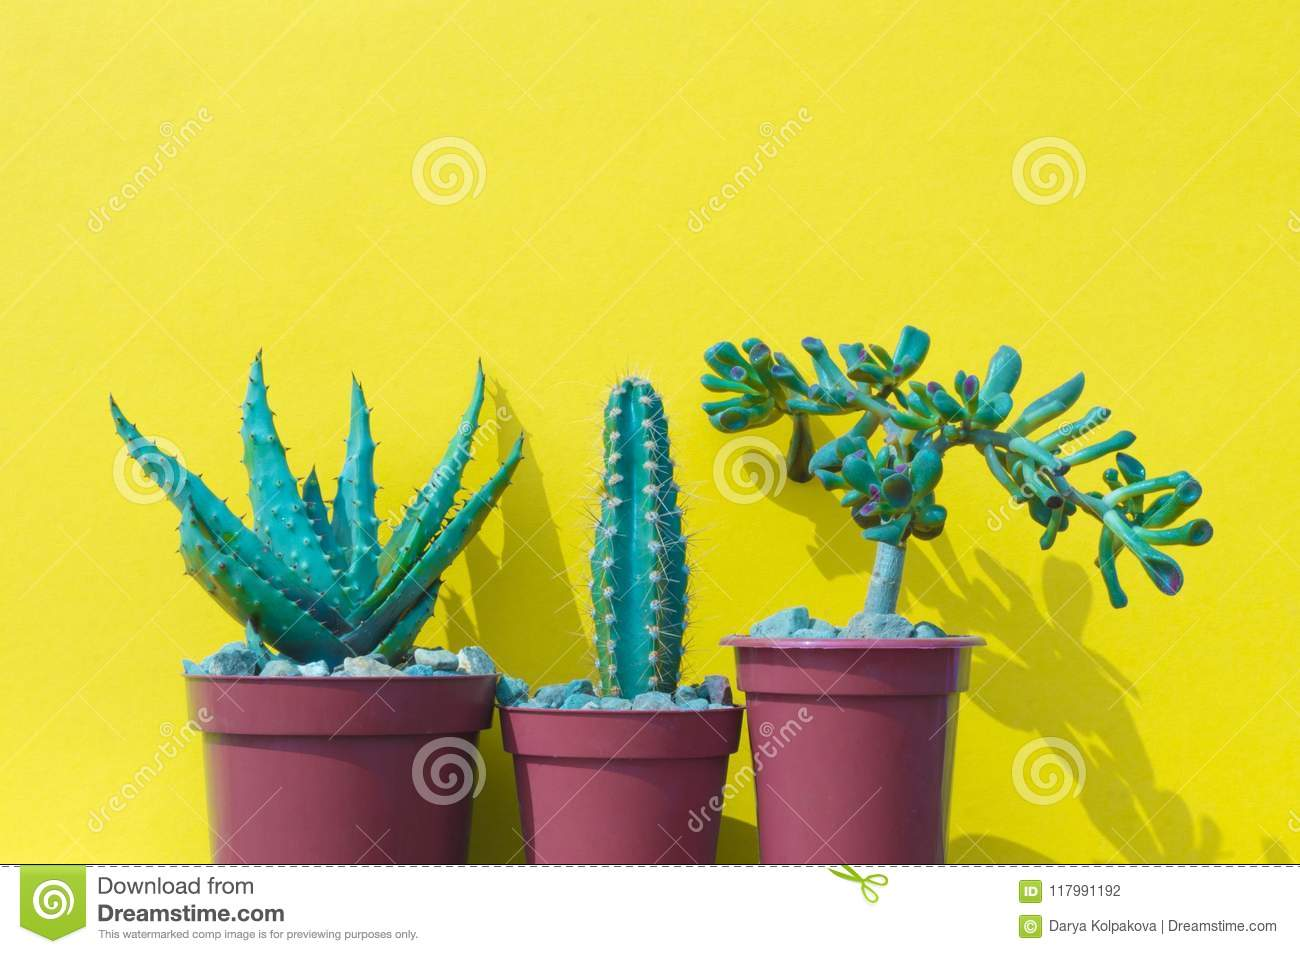 Cactus On The Desk With Yellow Wall And Minimal Style. Stock Photo ...